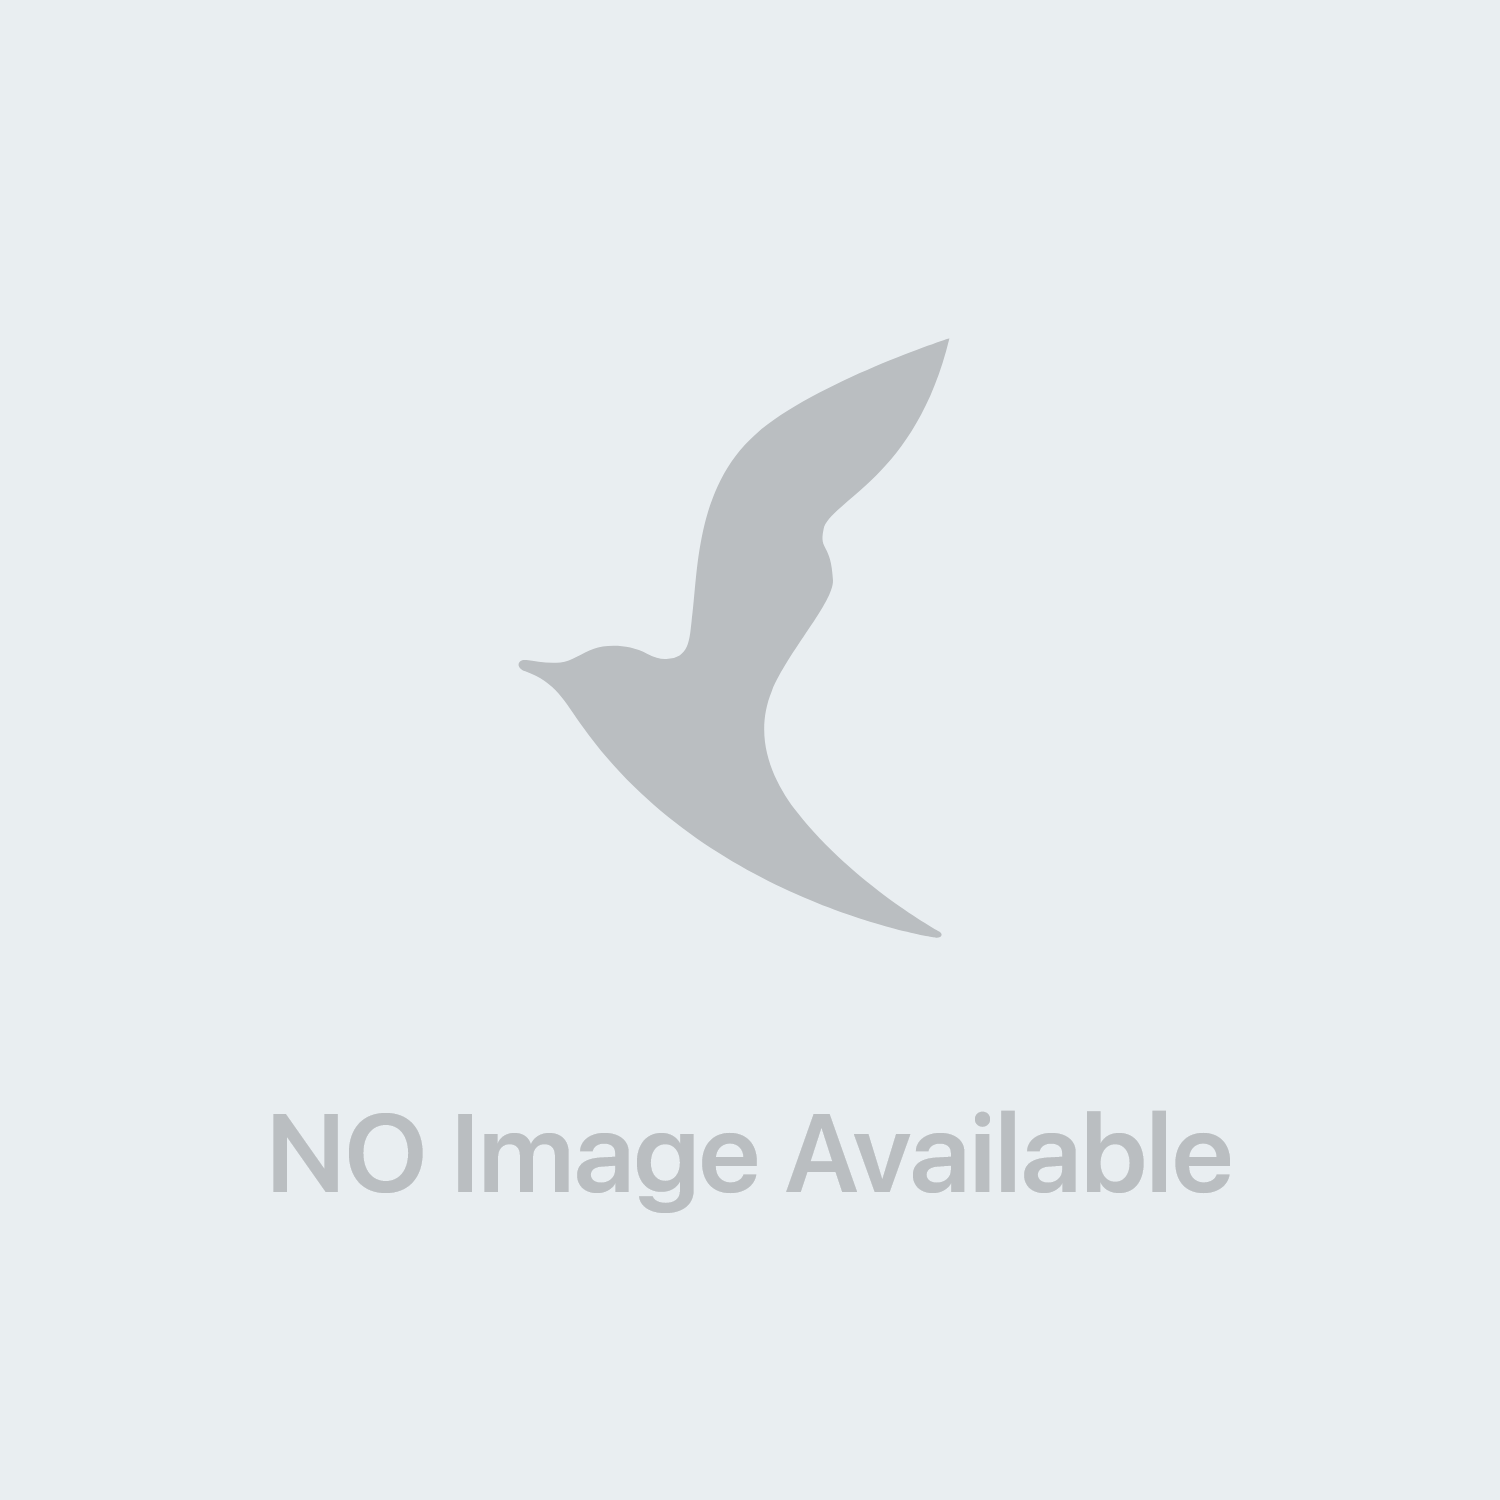 Anatrofine 200 Integratore Anticaduta Capelli 30 Compresse